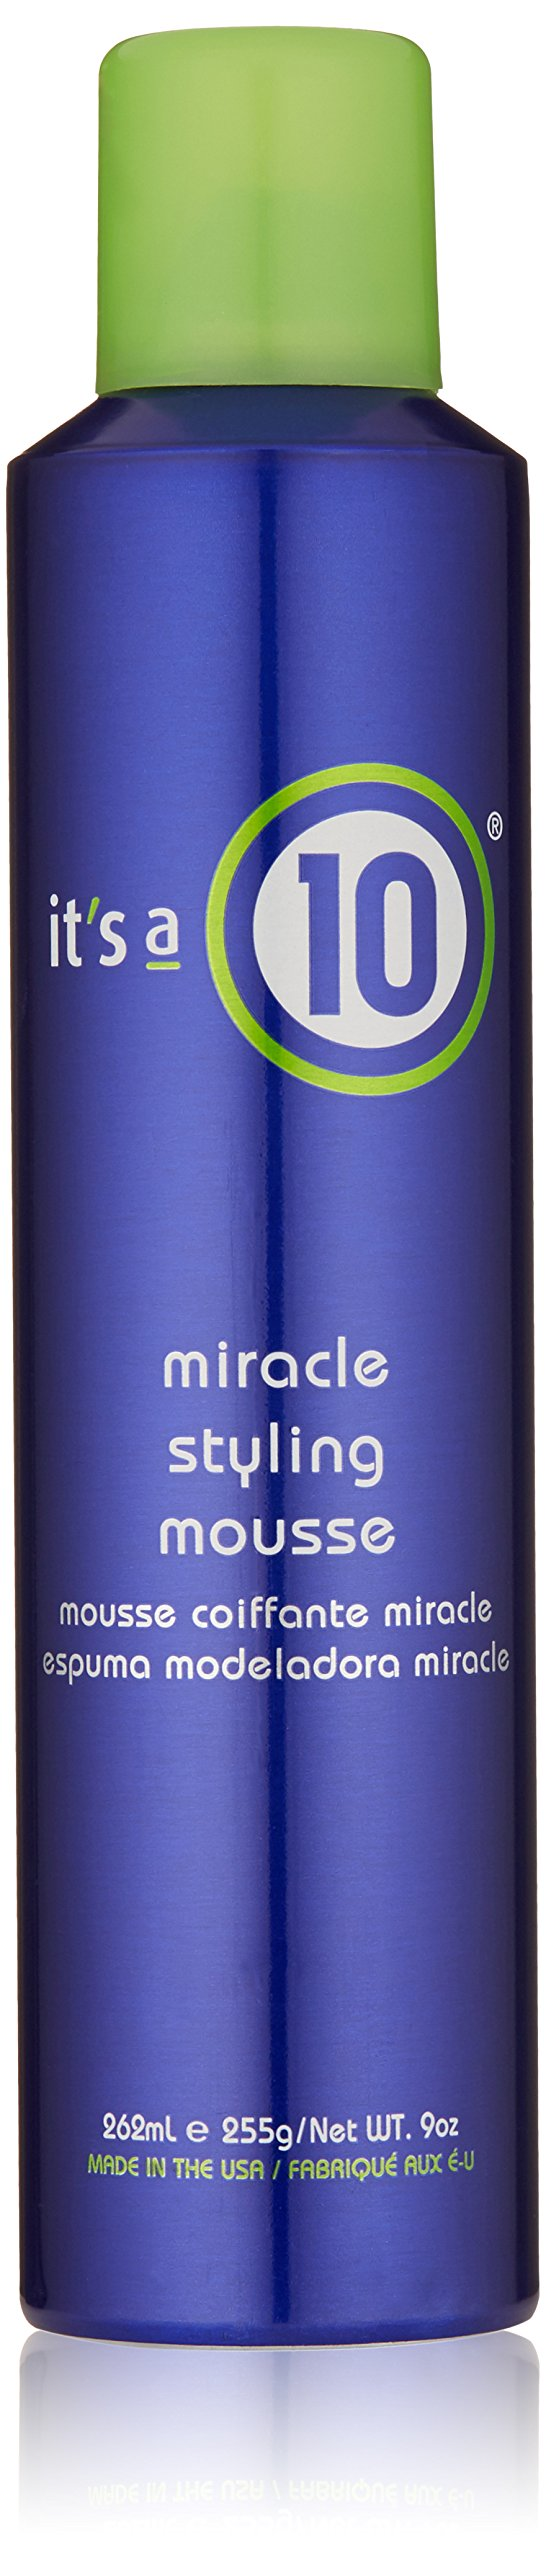 It's a 10 Haircare Miracle Styling Mousse, 9 fl. oz. by It's a 10 Haircare